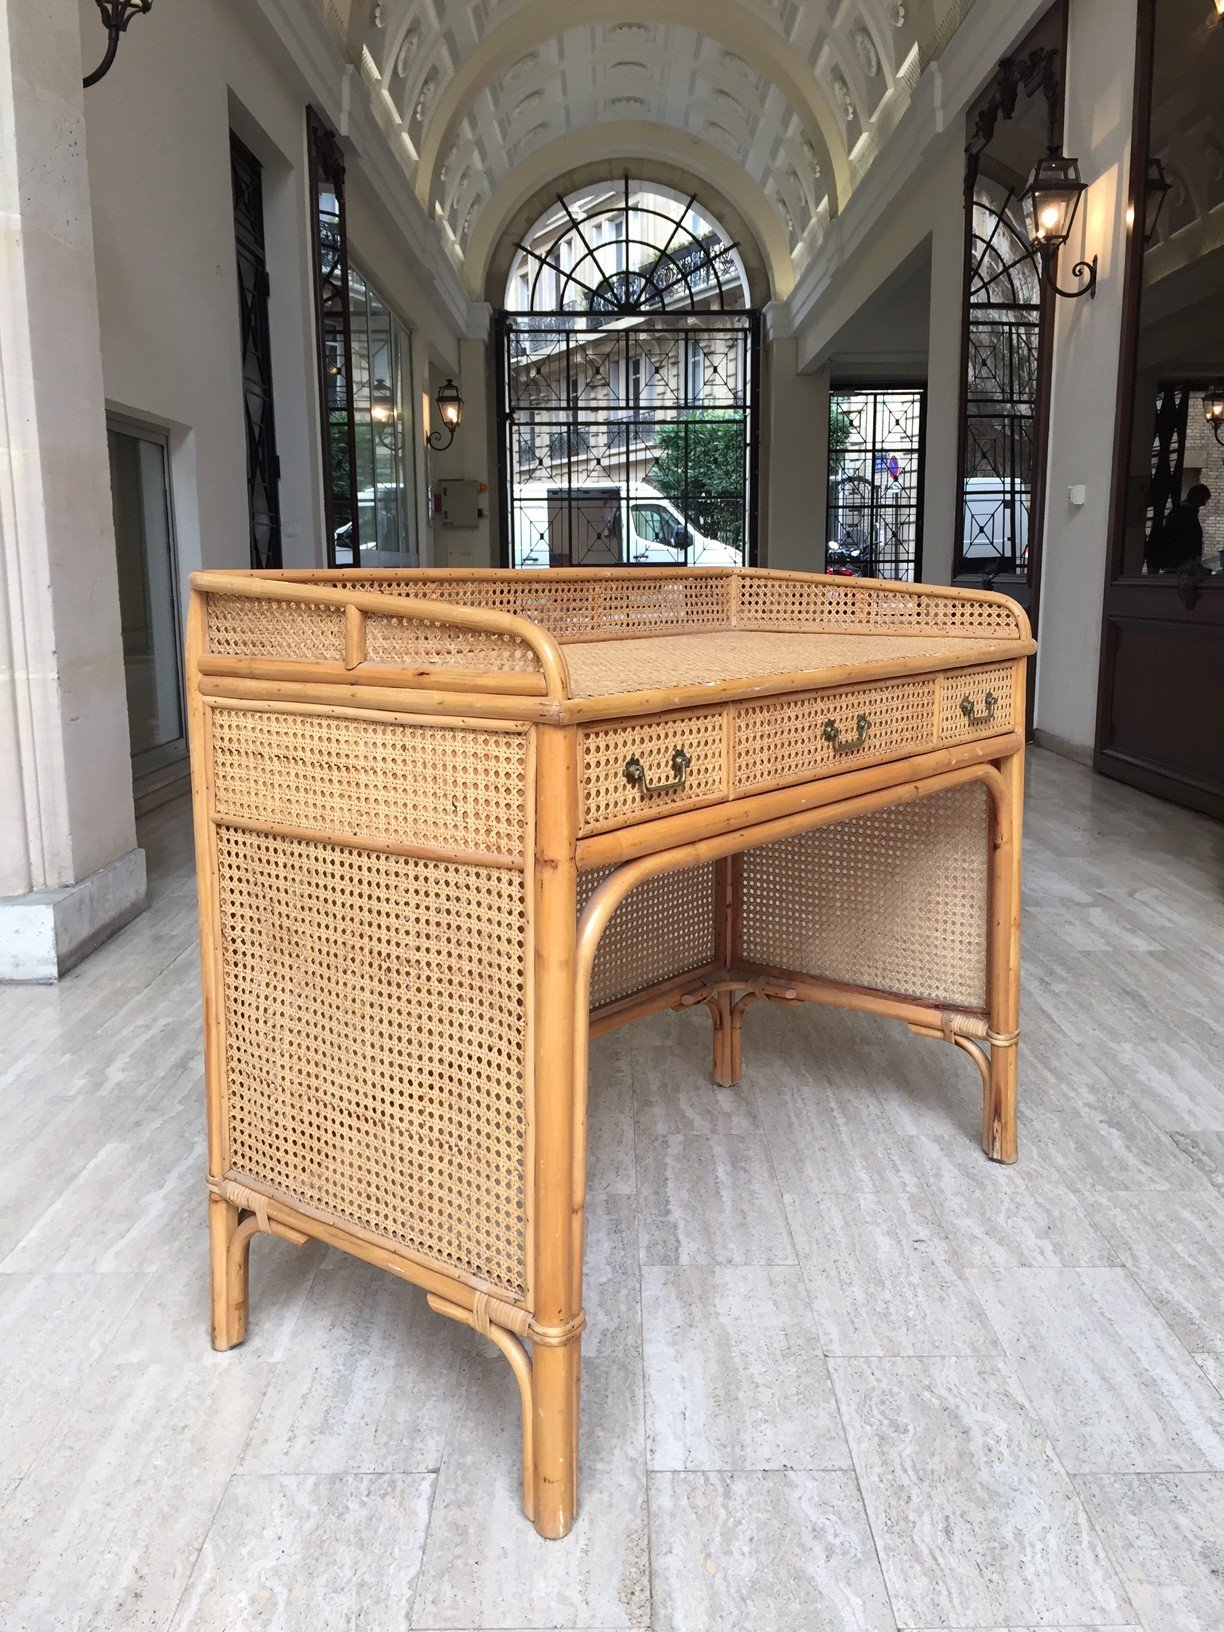 Vintage Rattan Desk 1960s Previous Next